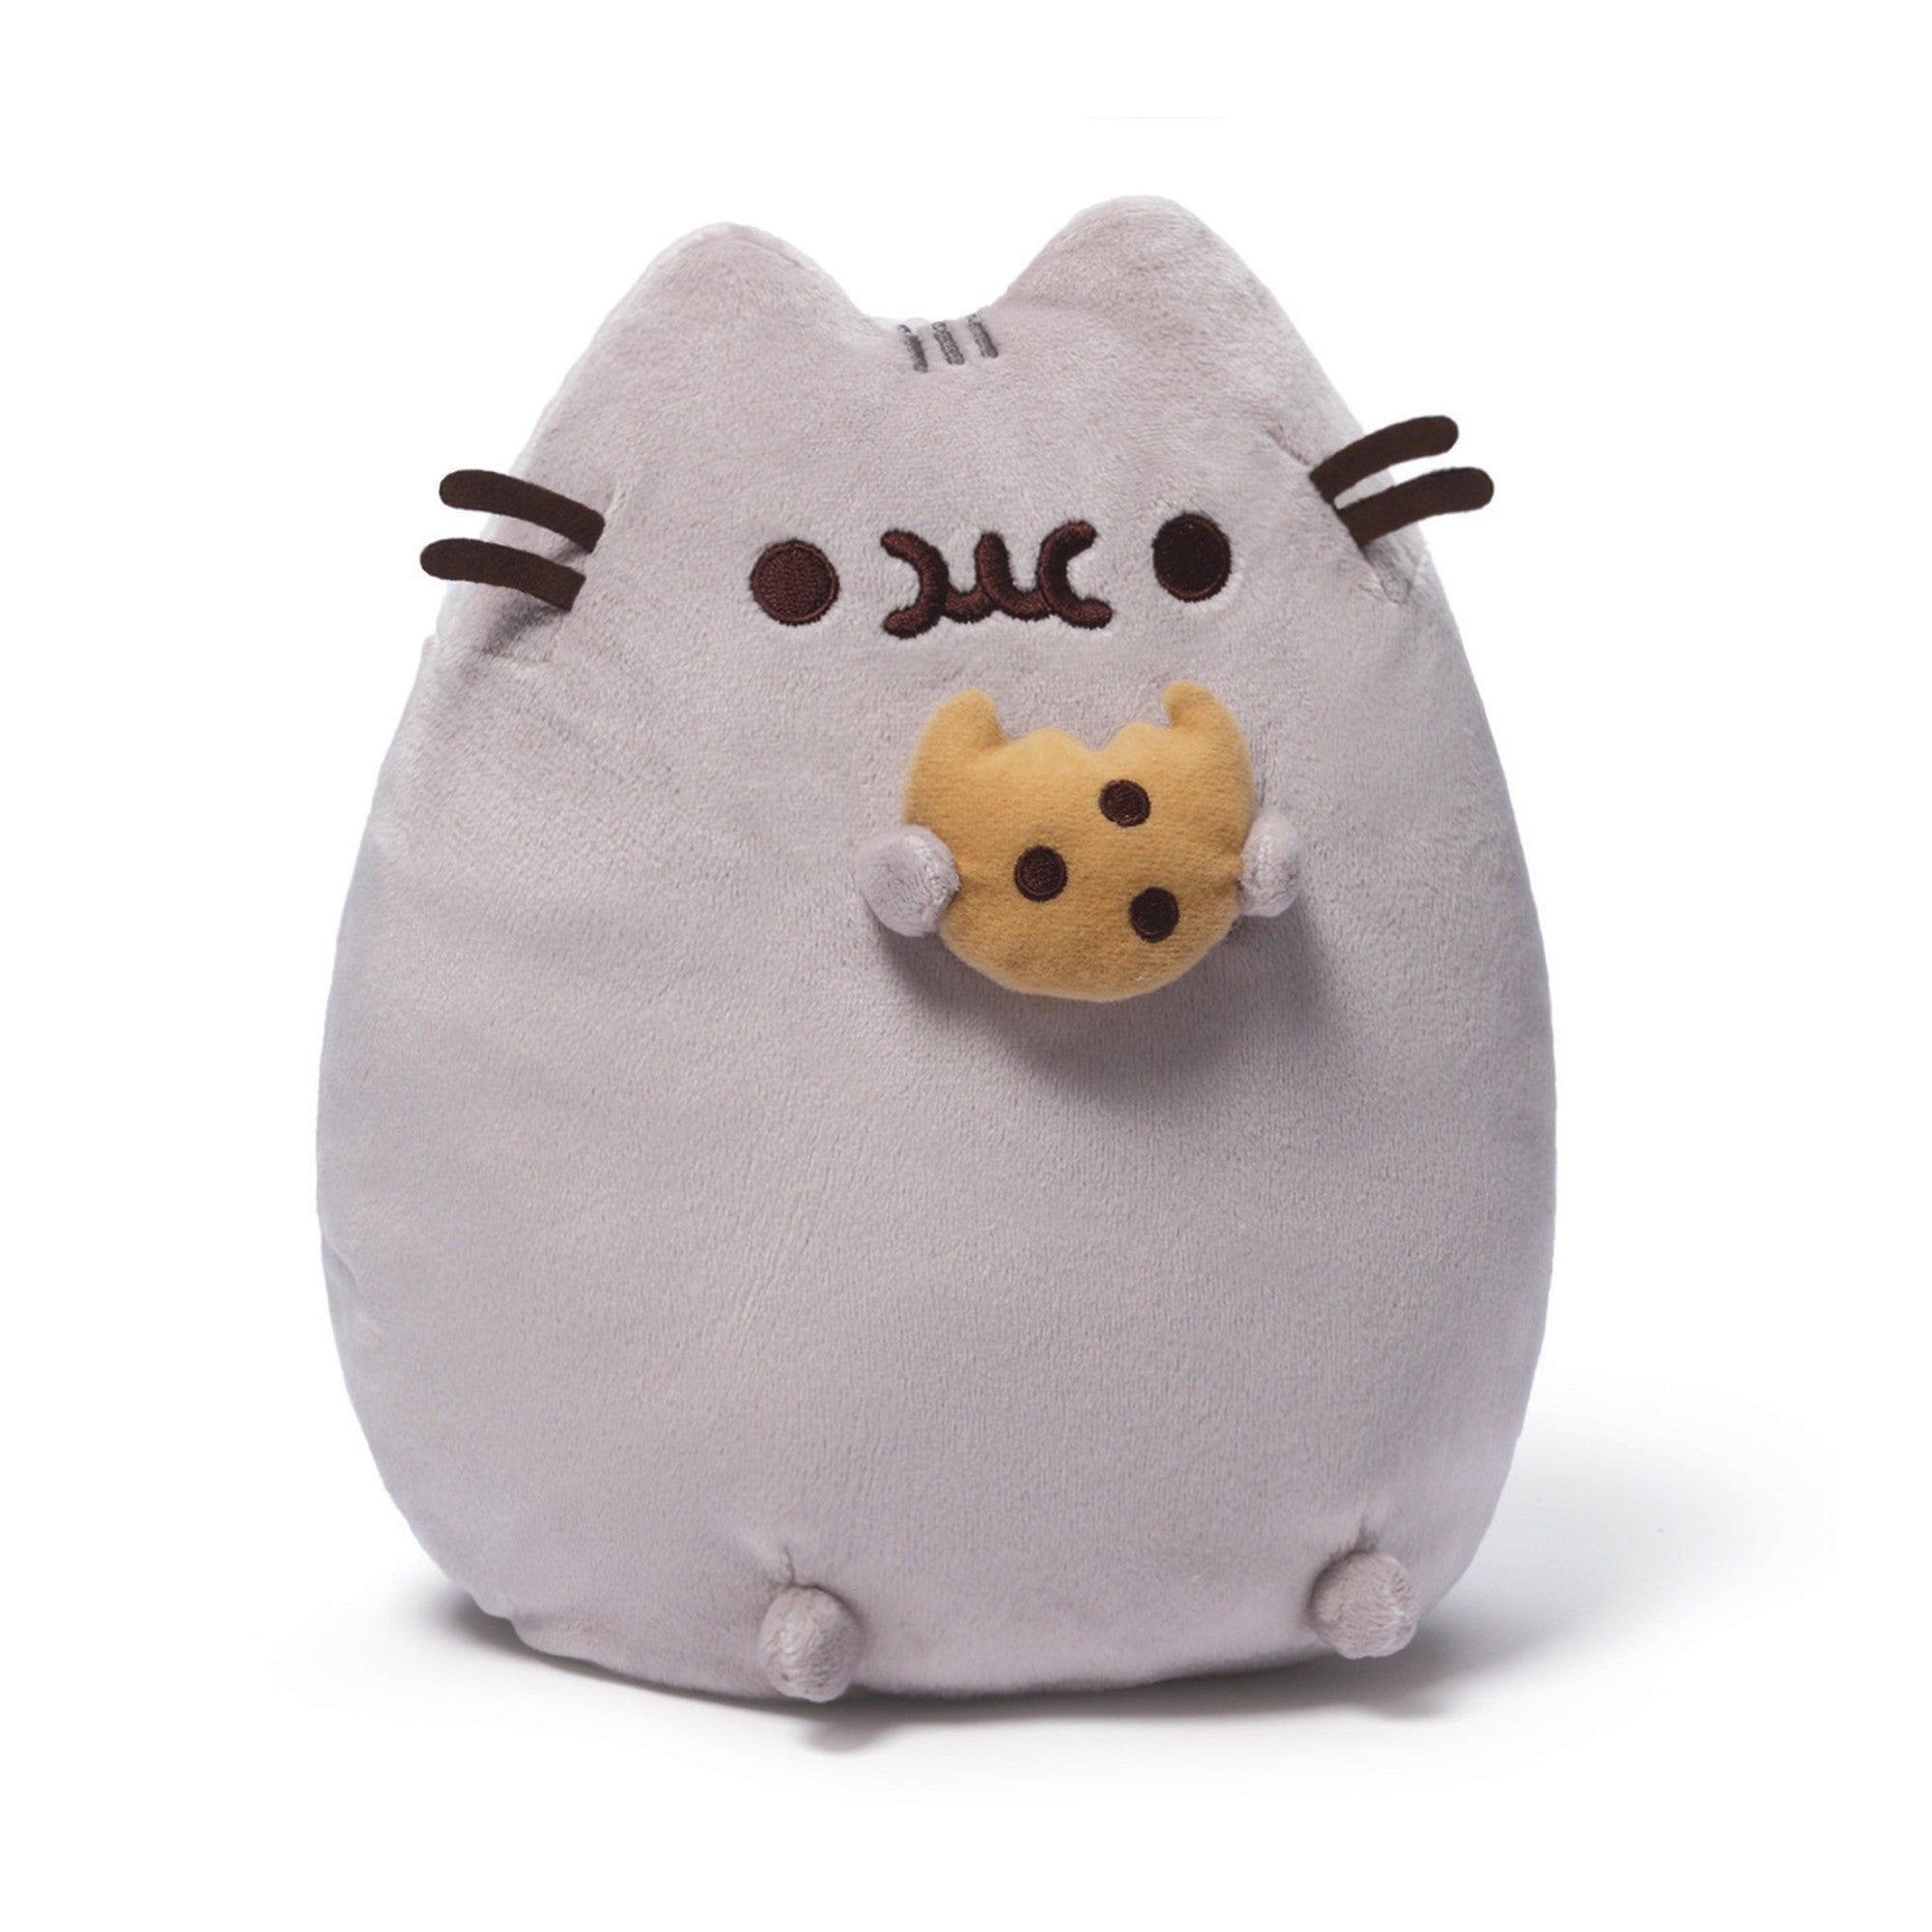 "Pusheen the Cat 10"" Cookie Plush"